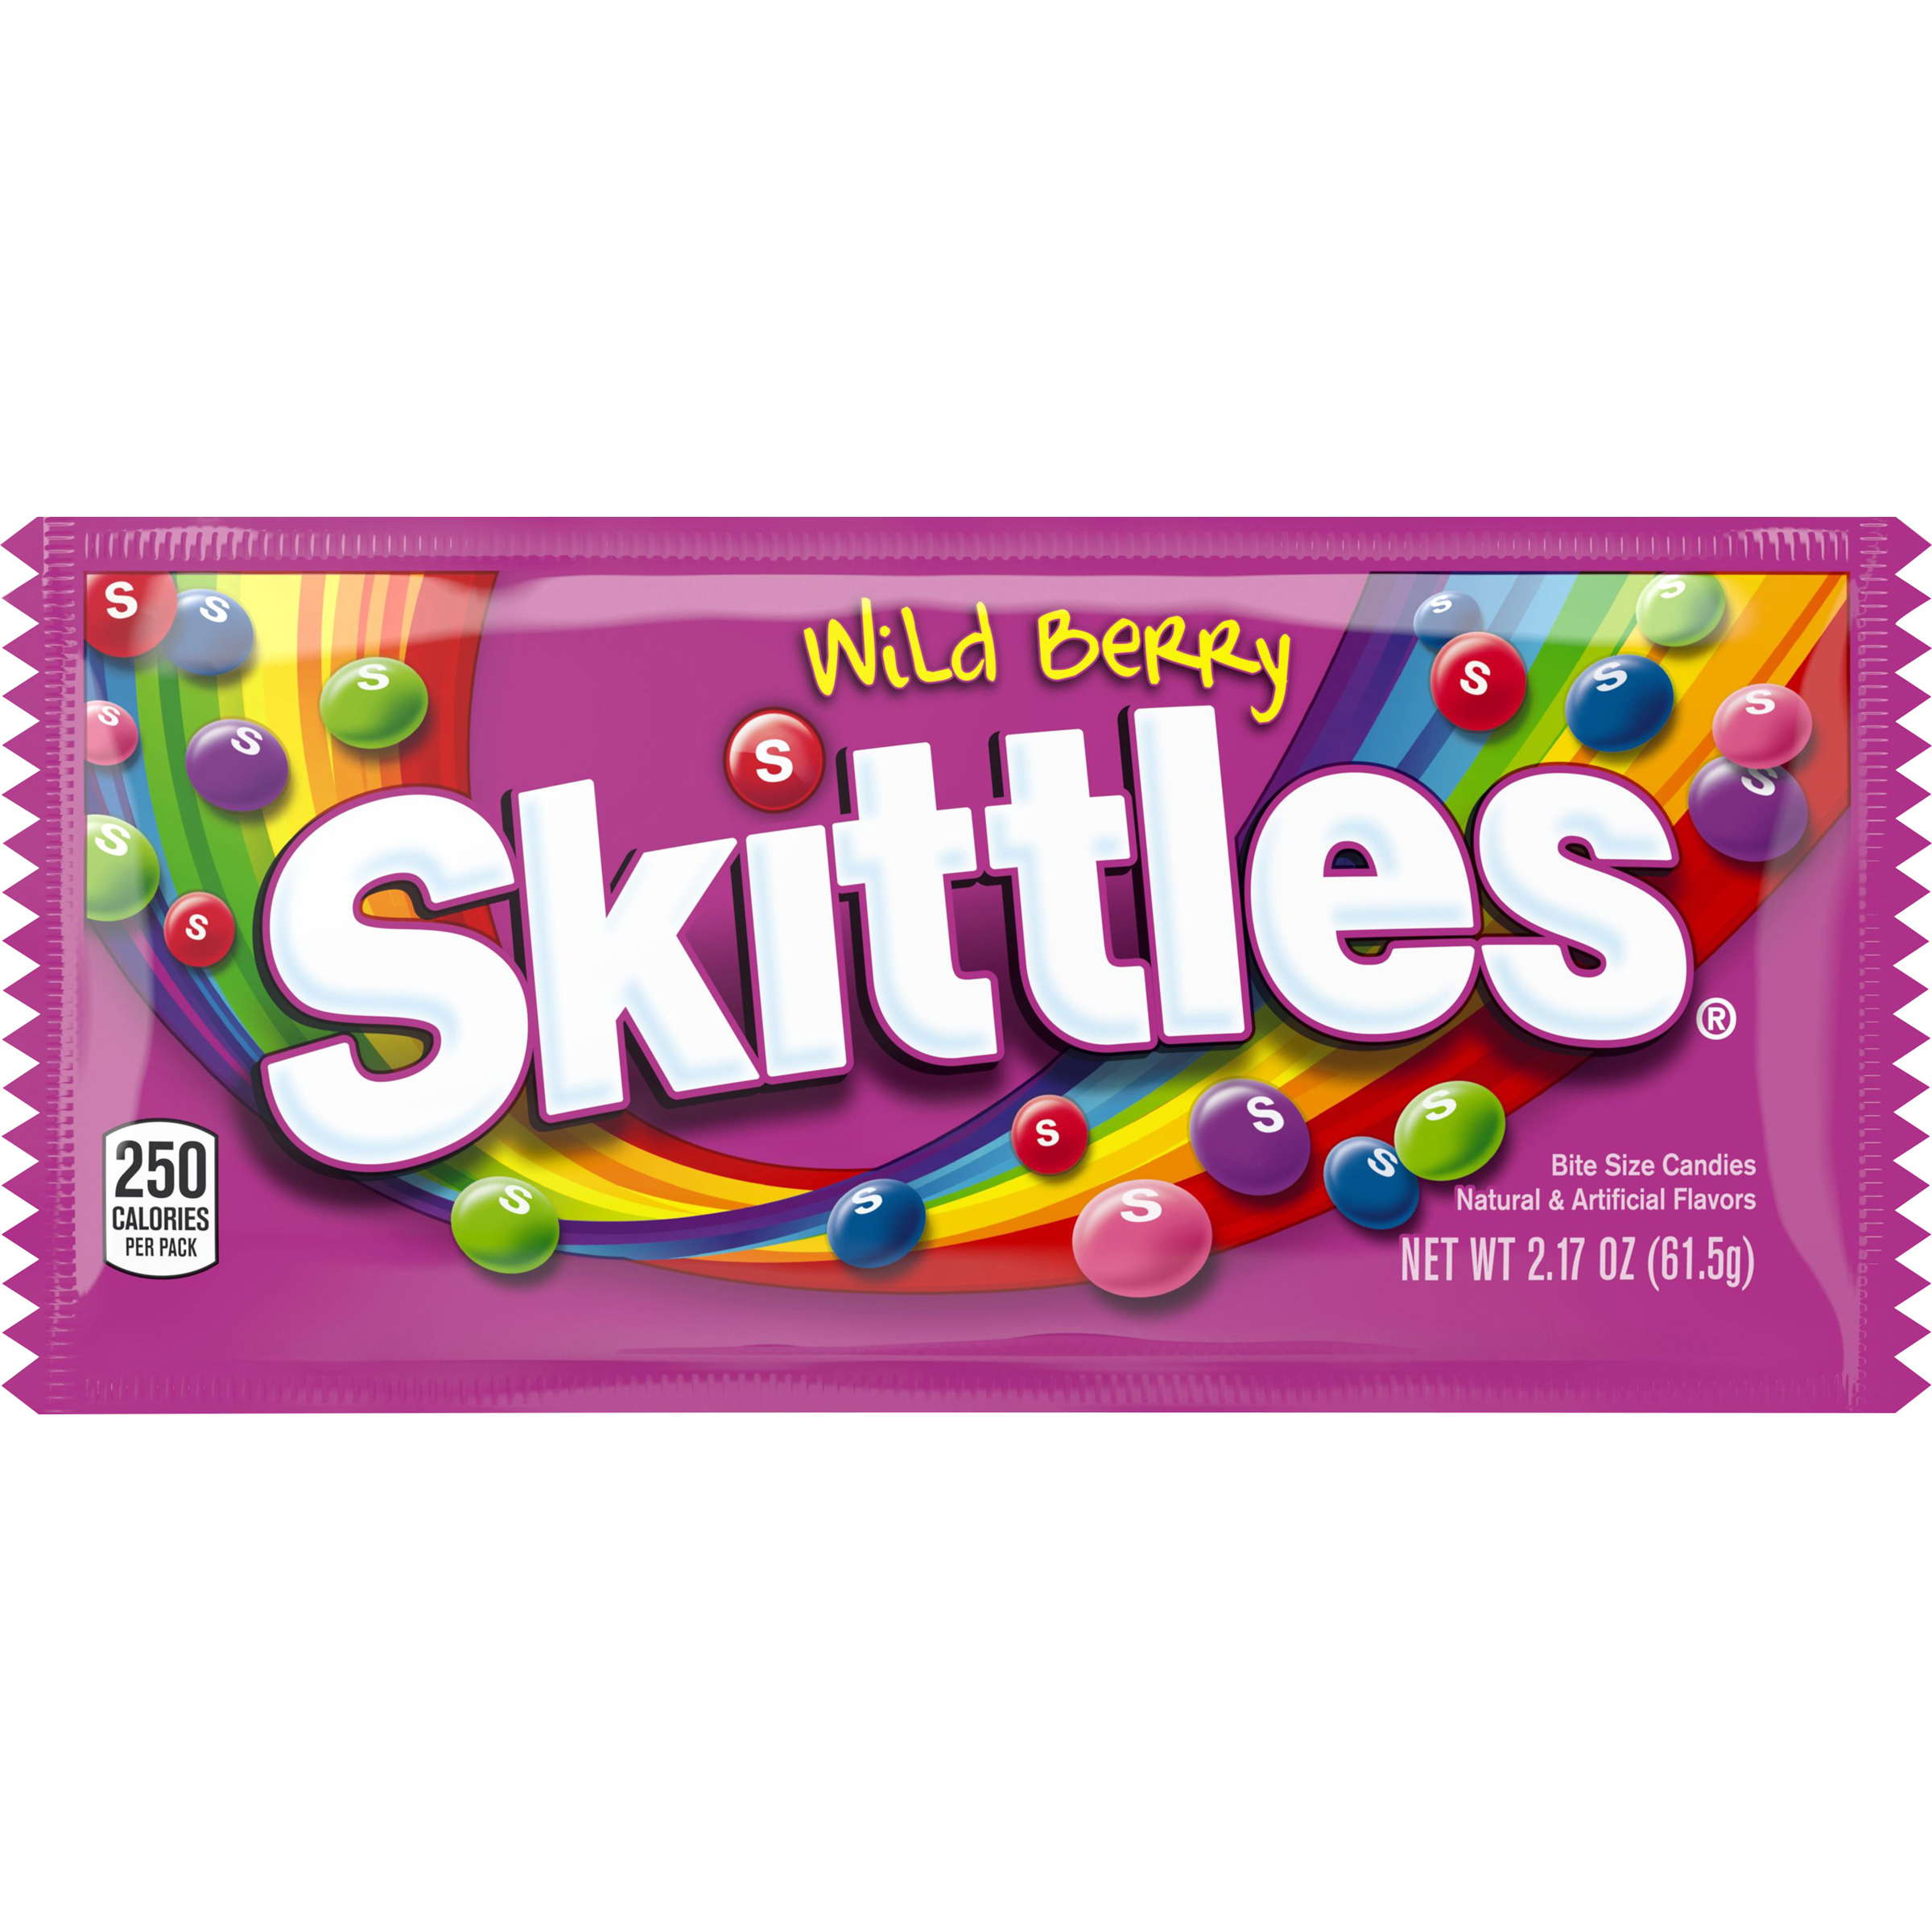 Skittles Wild Berry Candy Single Pack, 2.17 ounce